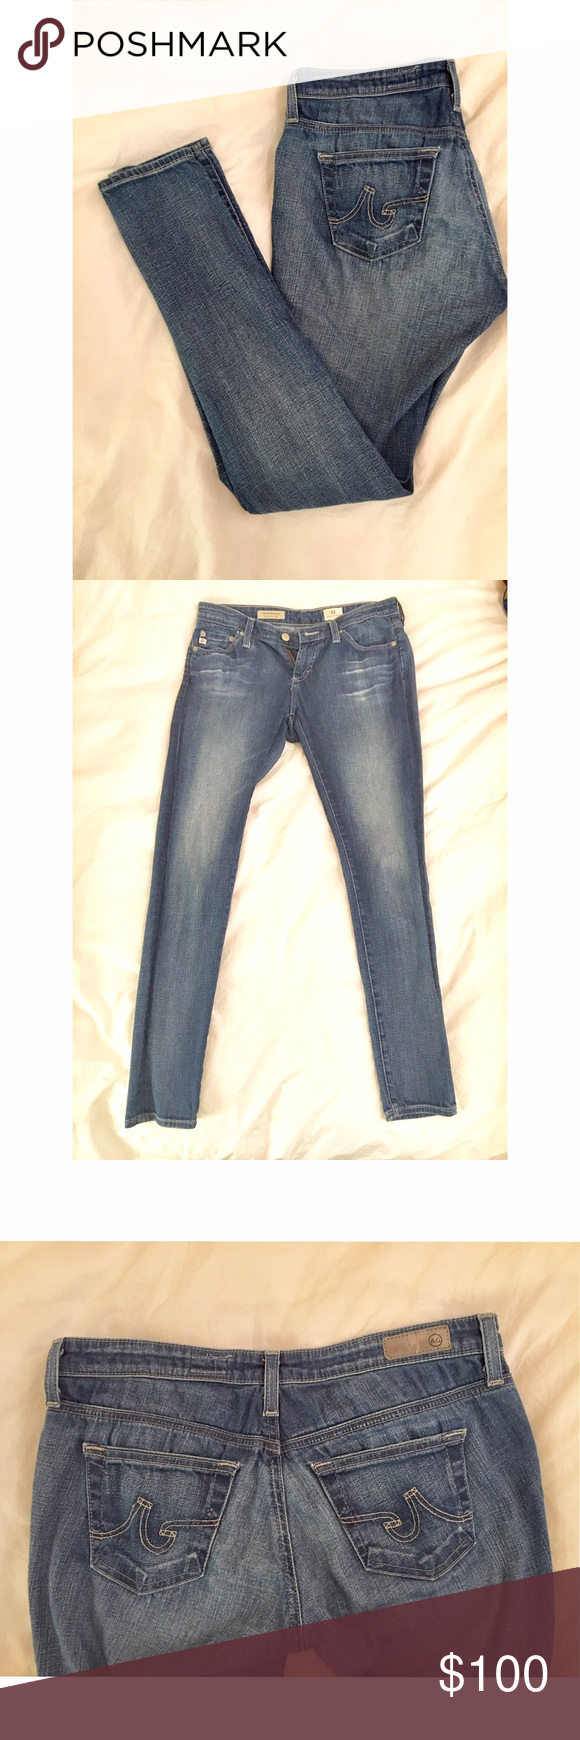 """AG Jeans """"The Legging"""" Jean in Blue Wash Super skinny ankle fit. Incredibly soft, you'll love wearing it. Only thin with AG jeans is that they get pretty loose after one wear, so you may need to use a belt on multiple wears (or wash your jeans after every wear). 98% cotton / 2% polyurethane. AG Adriano Goldschmied Jeans Skinny"""